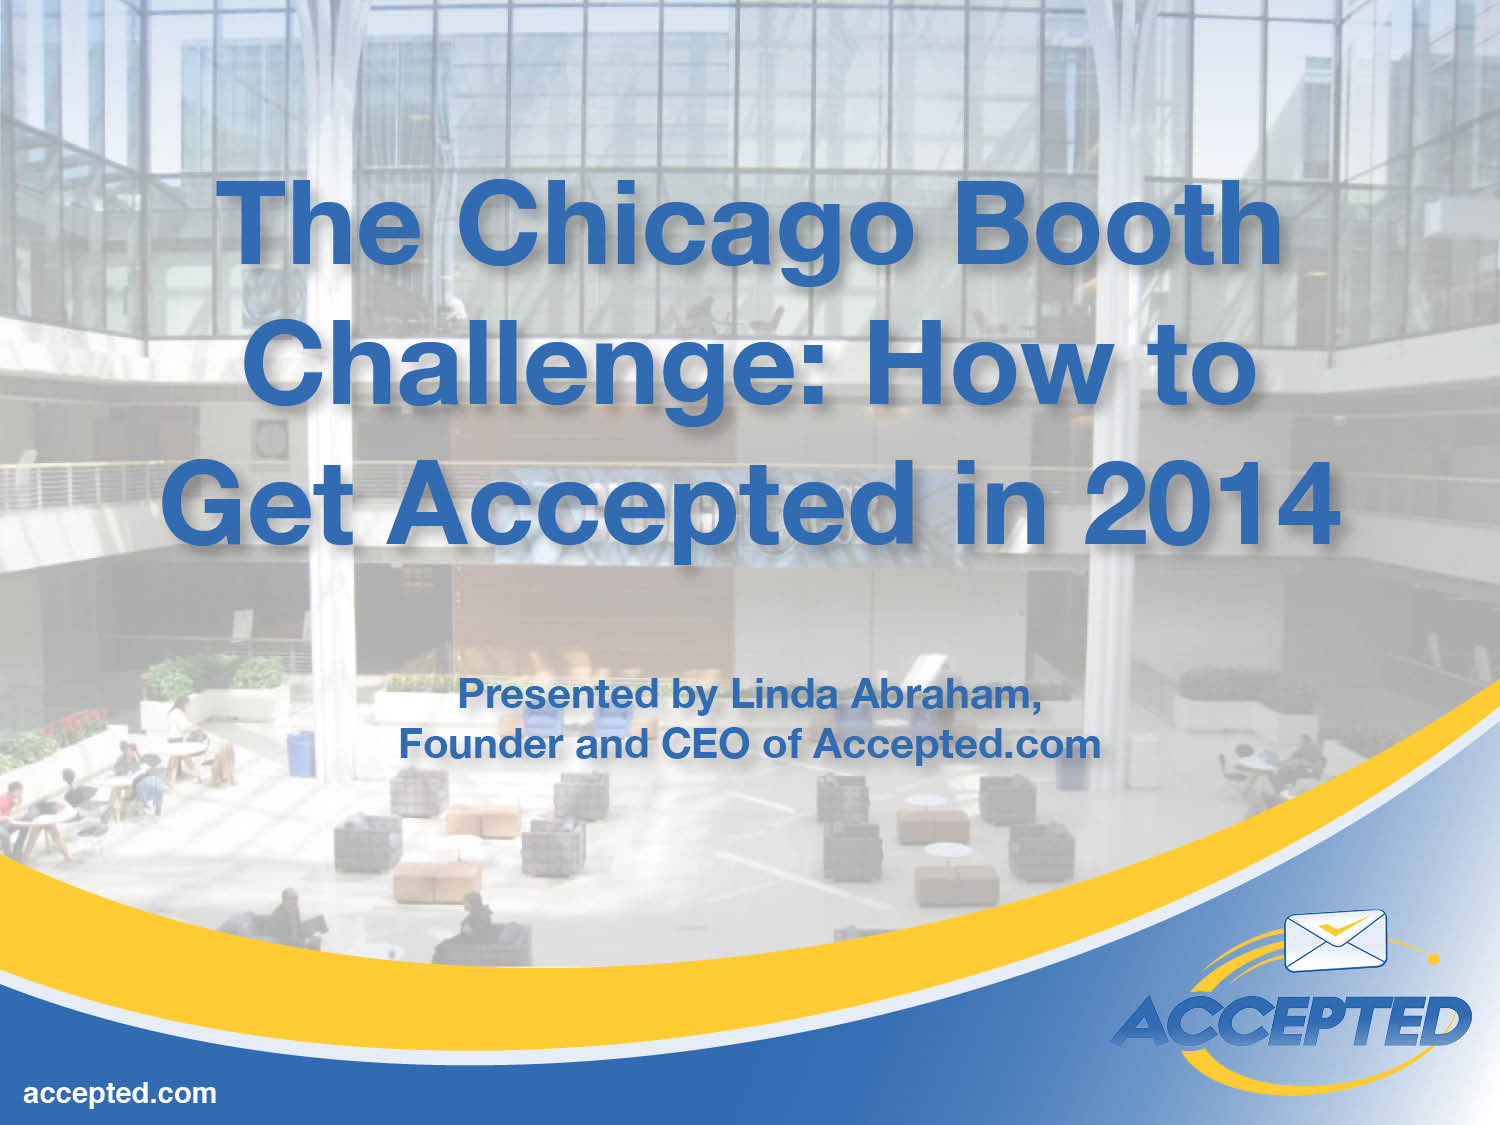 The Chicago Booth Challenge: How to Get Accepted in 2014 Webinar